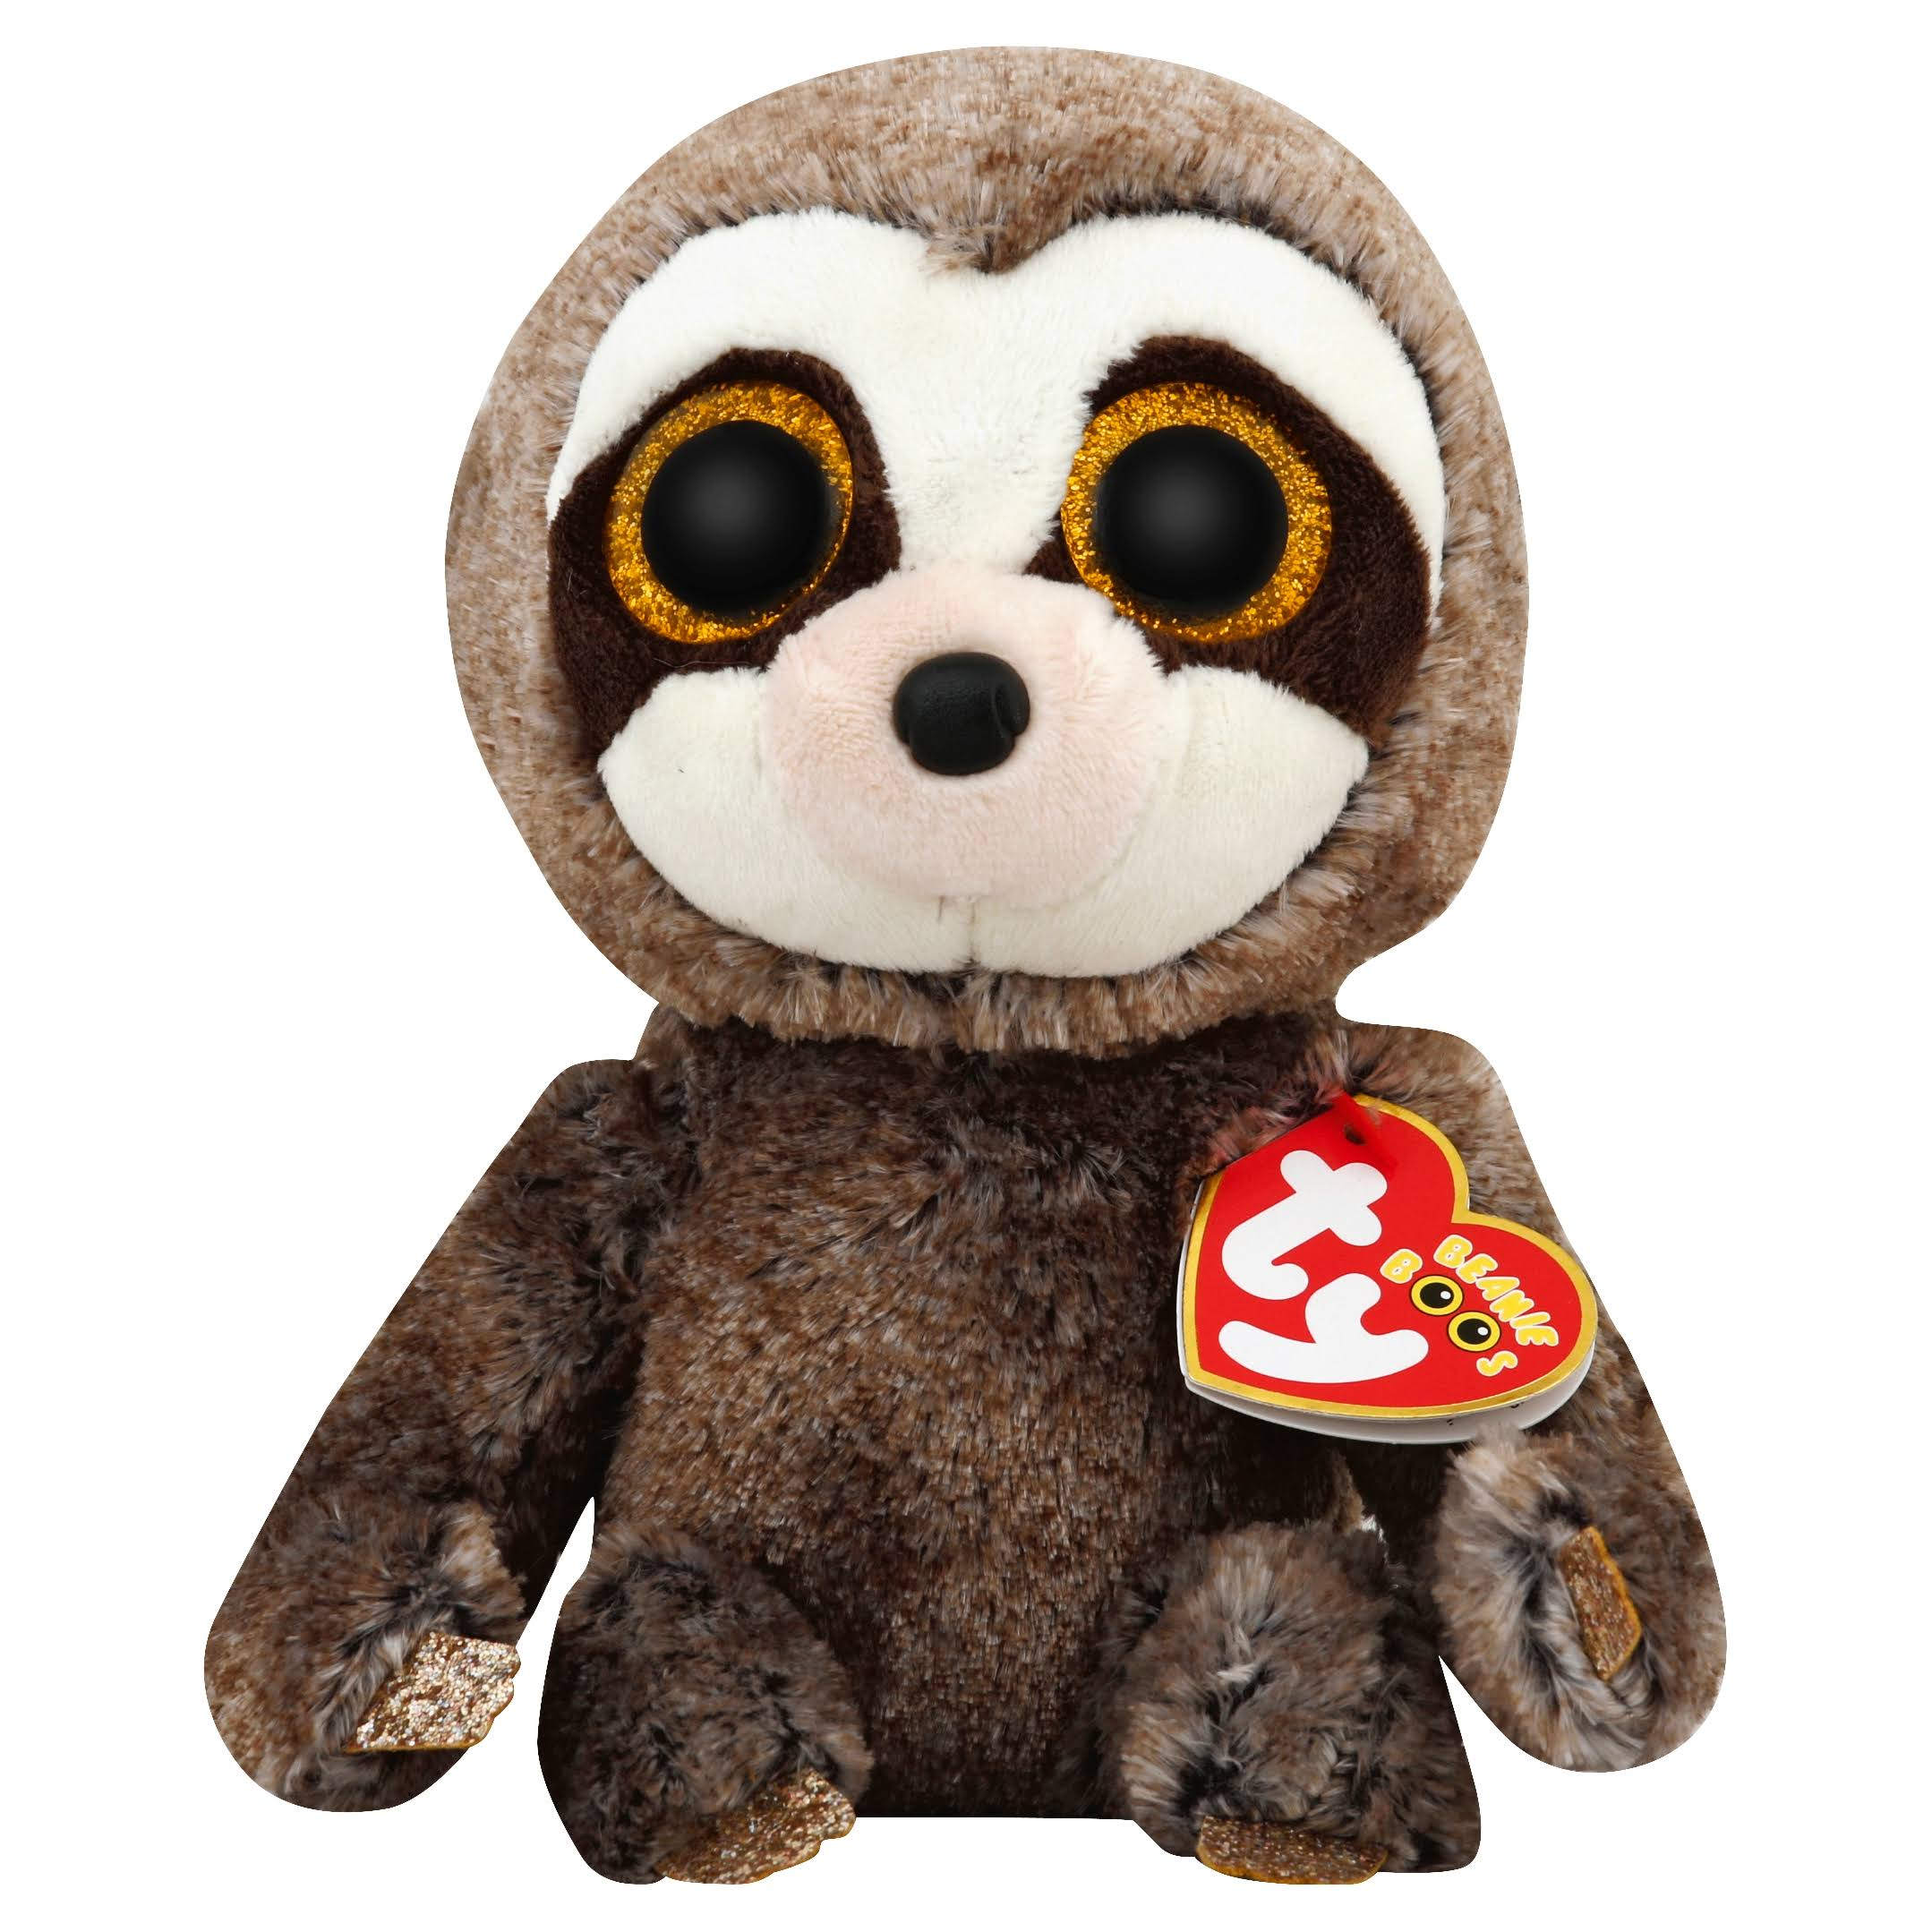 TY Beanie Boo Sloth Plush Toy - Dangler, 15cm